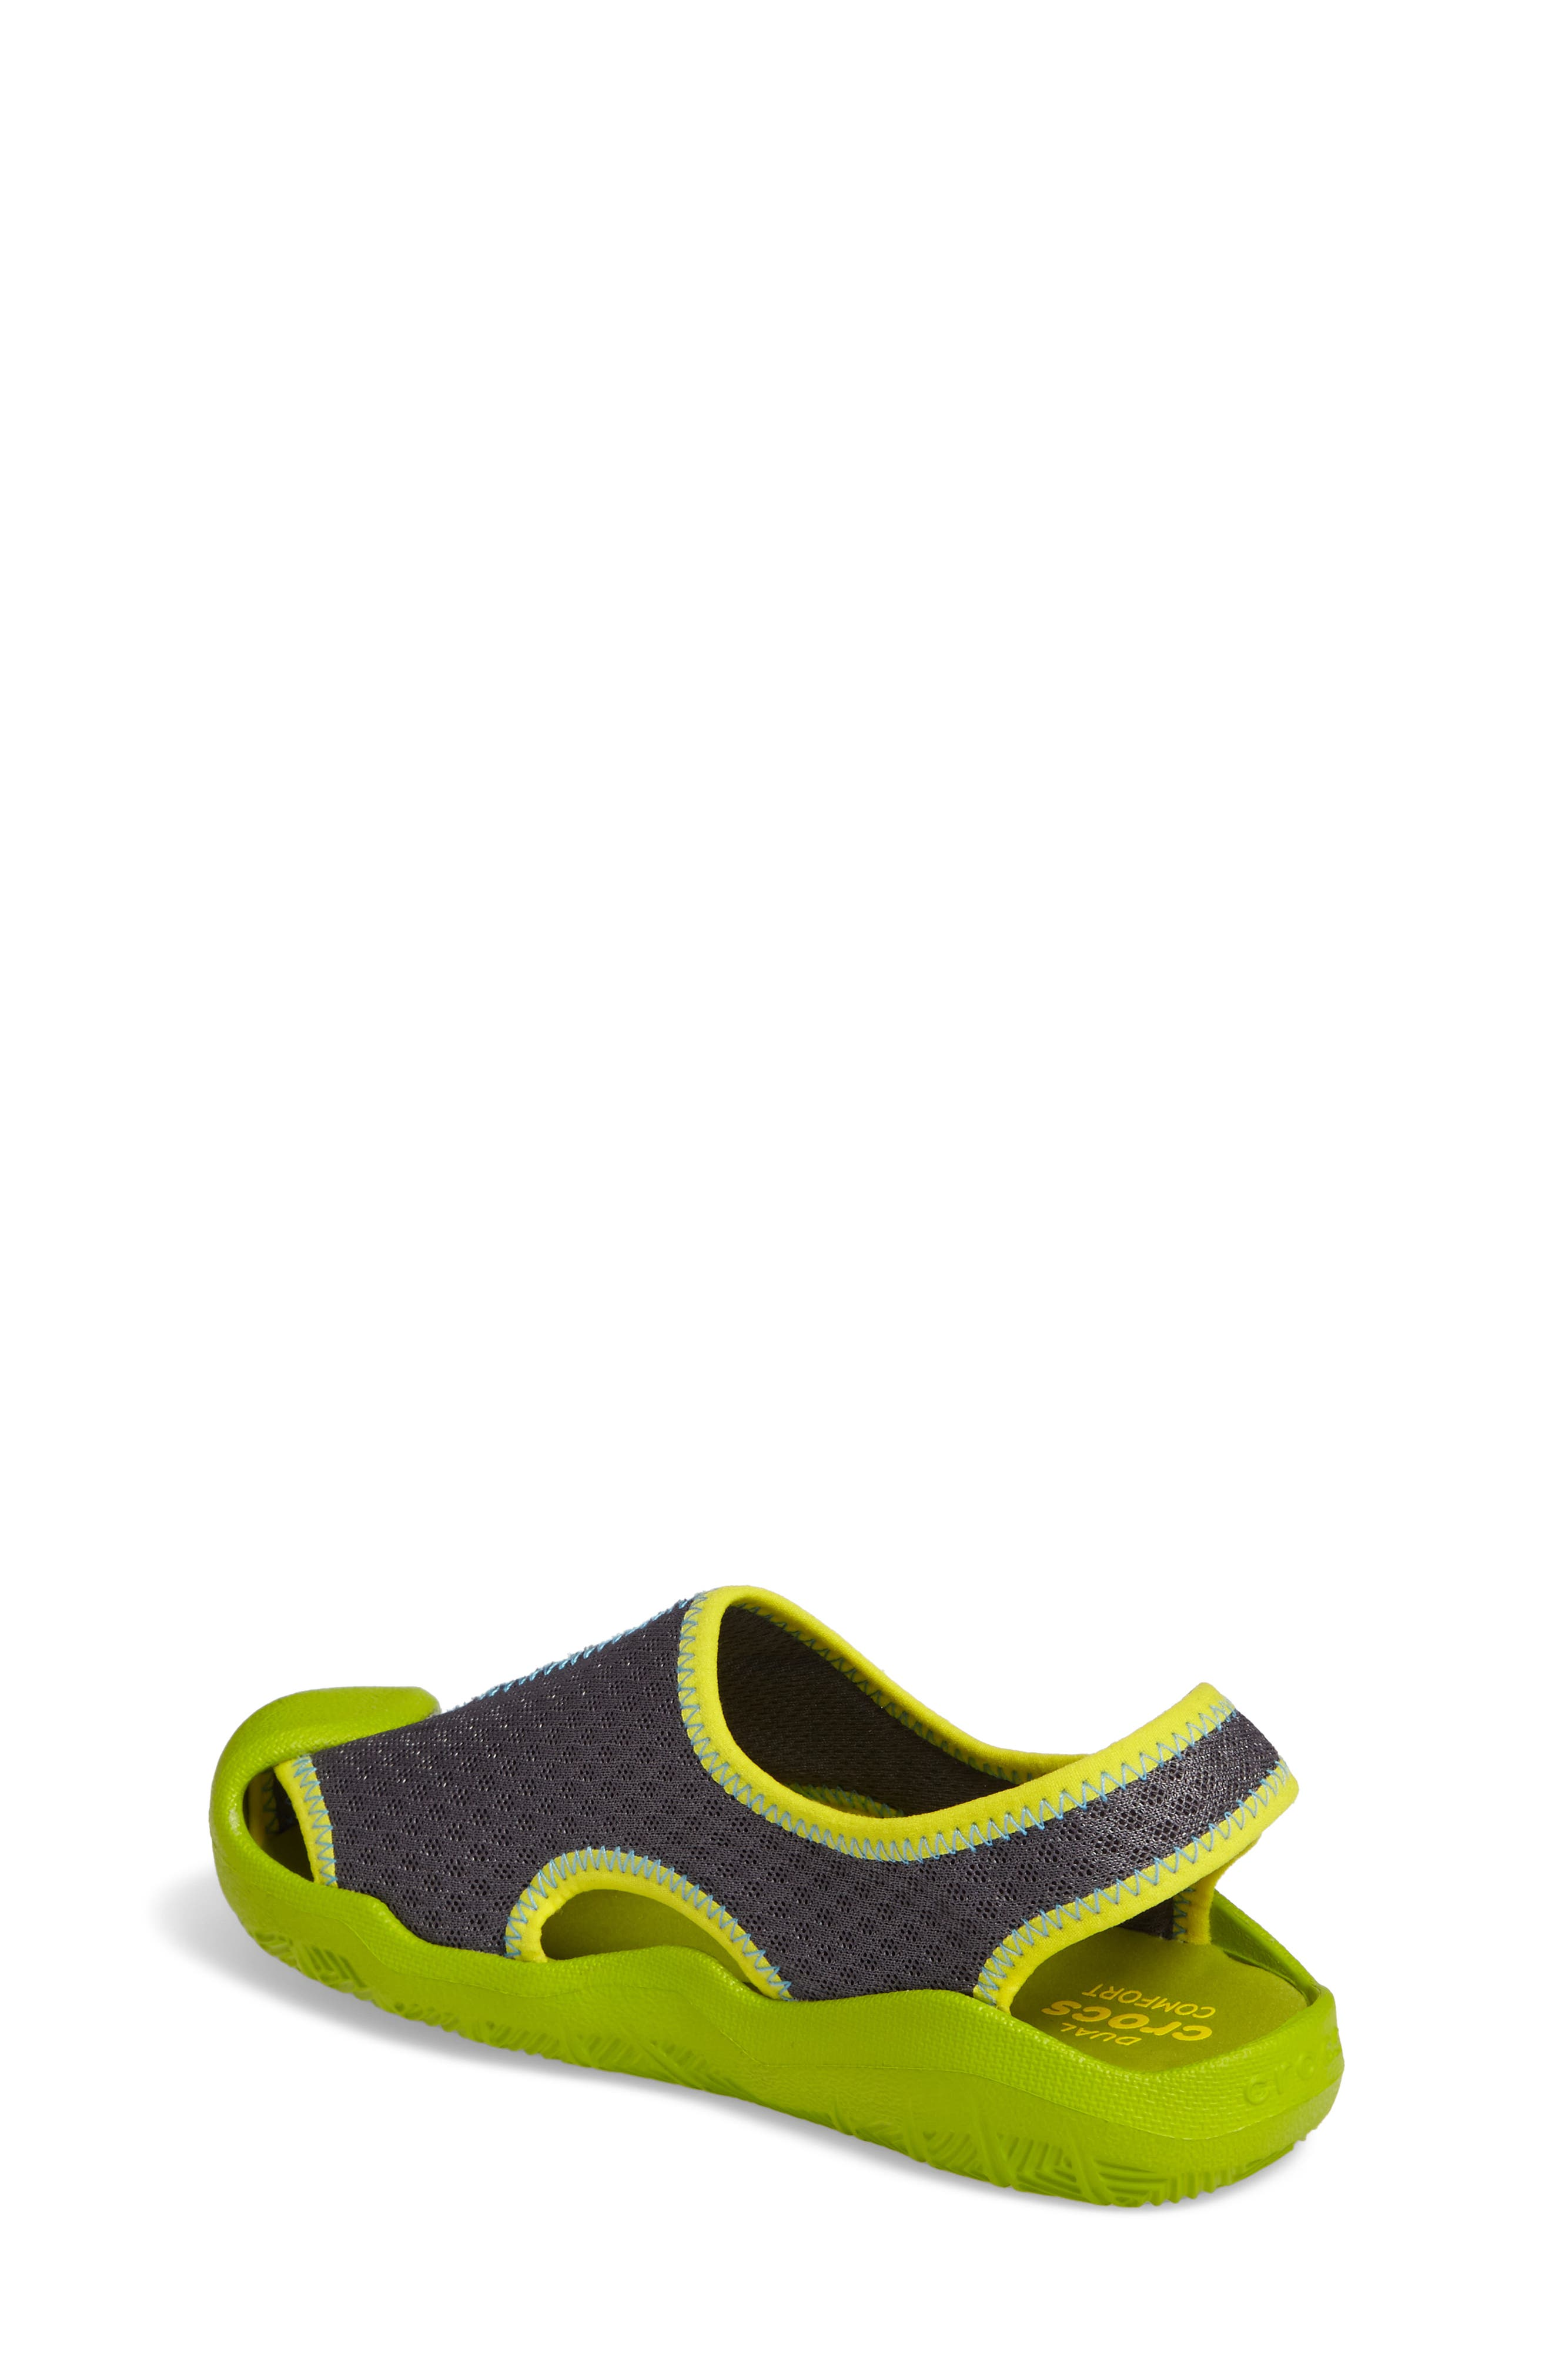 Swiftwater Sandal,                             Alternate thumbnail 8, color,